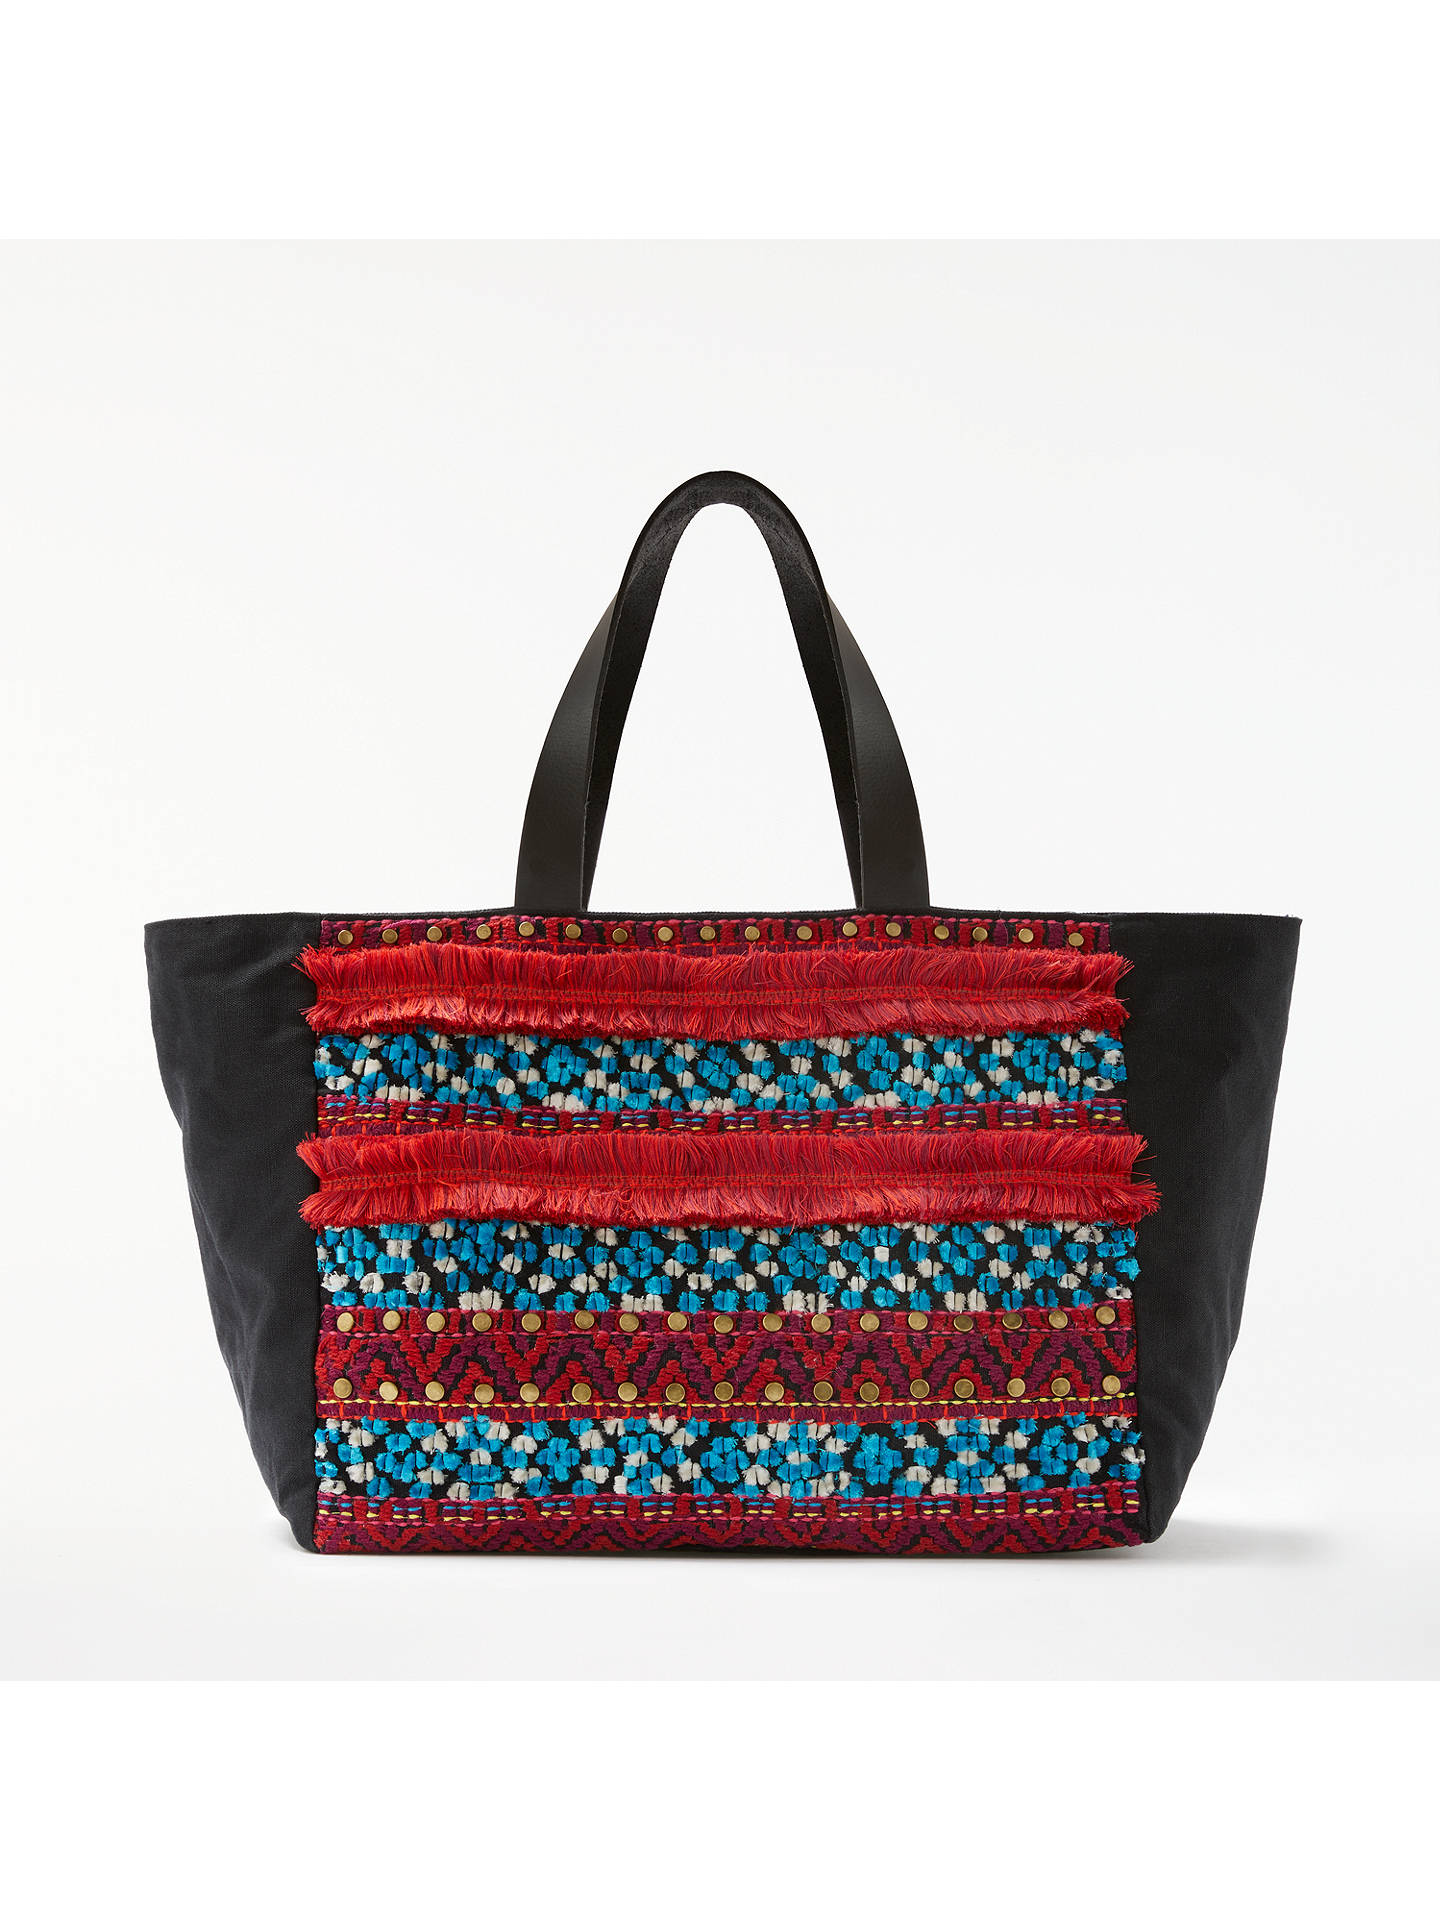 AND/OR Atala Embellished East/West Tote Bag, Multi at John Lewis ...